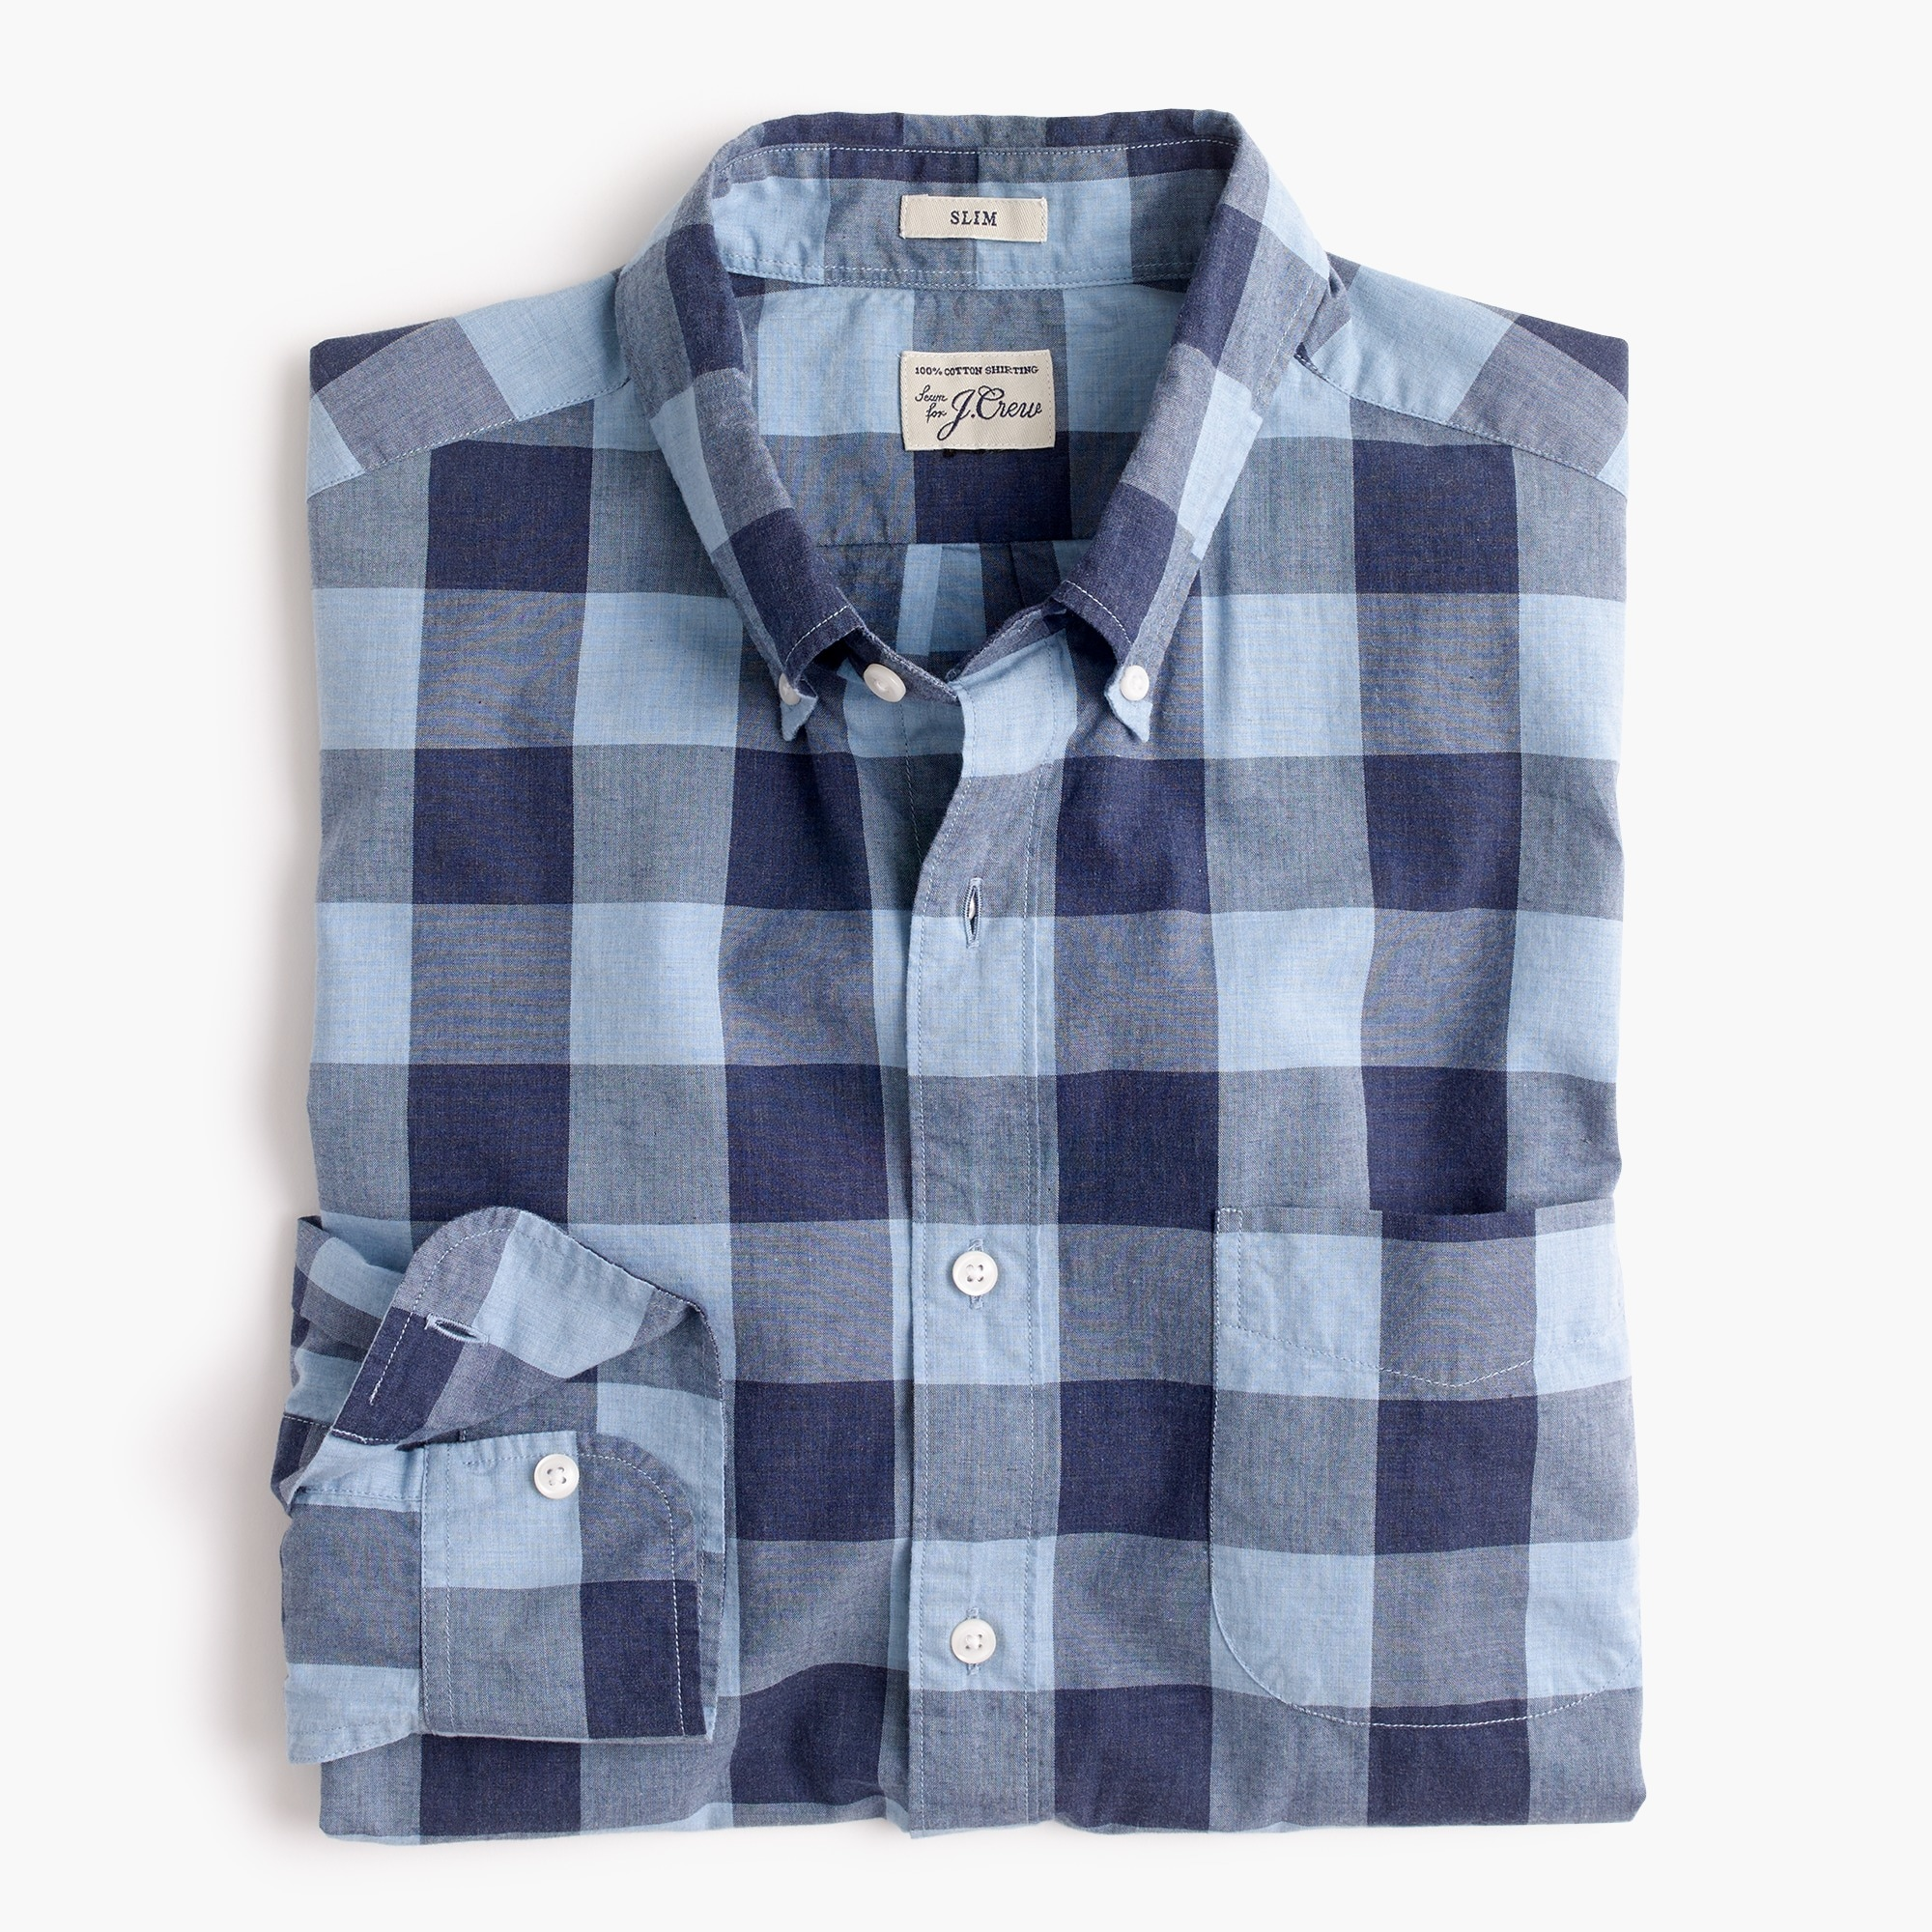 Secret Wash shirt in heather poplin seaside check